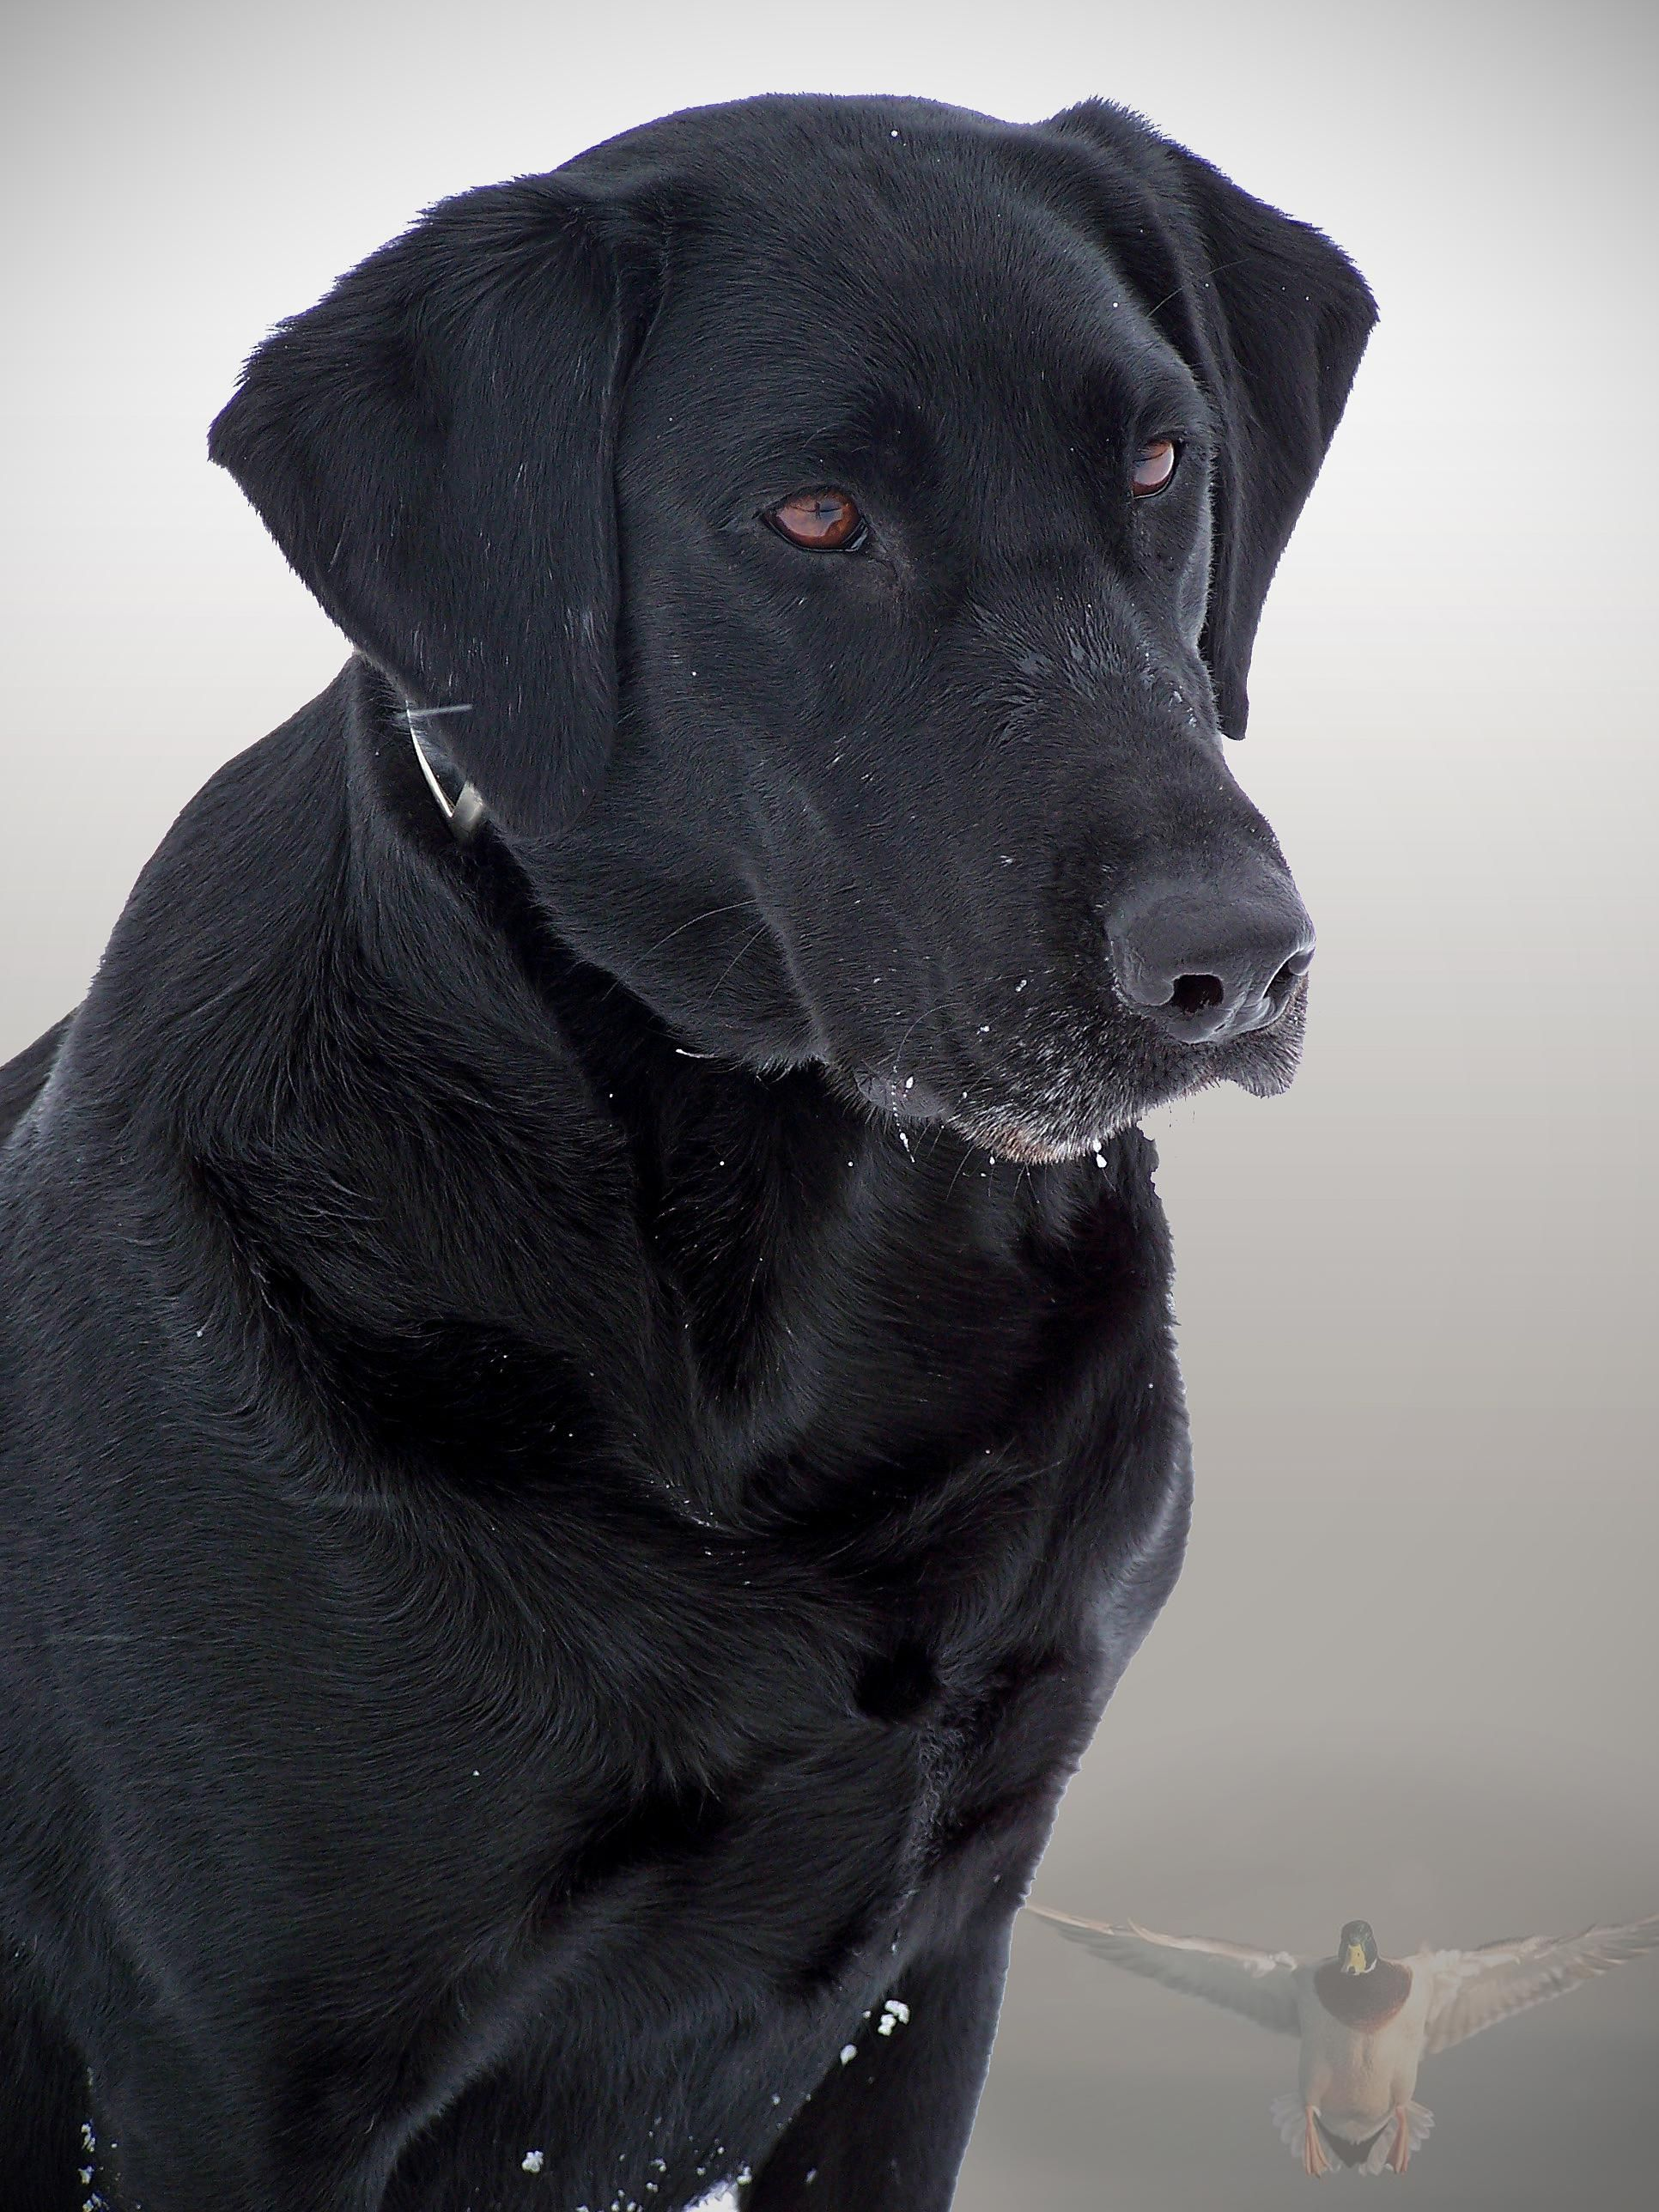 fileblack dogjpg wikimedia commons